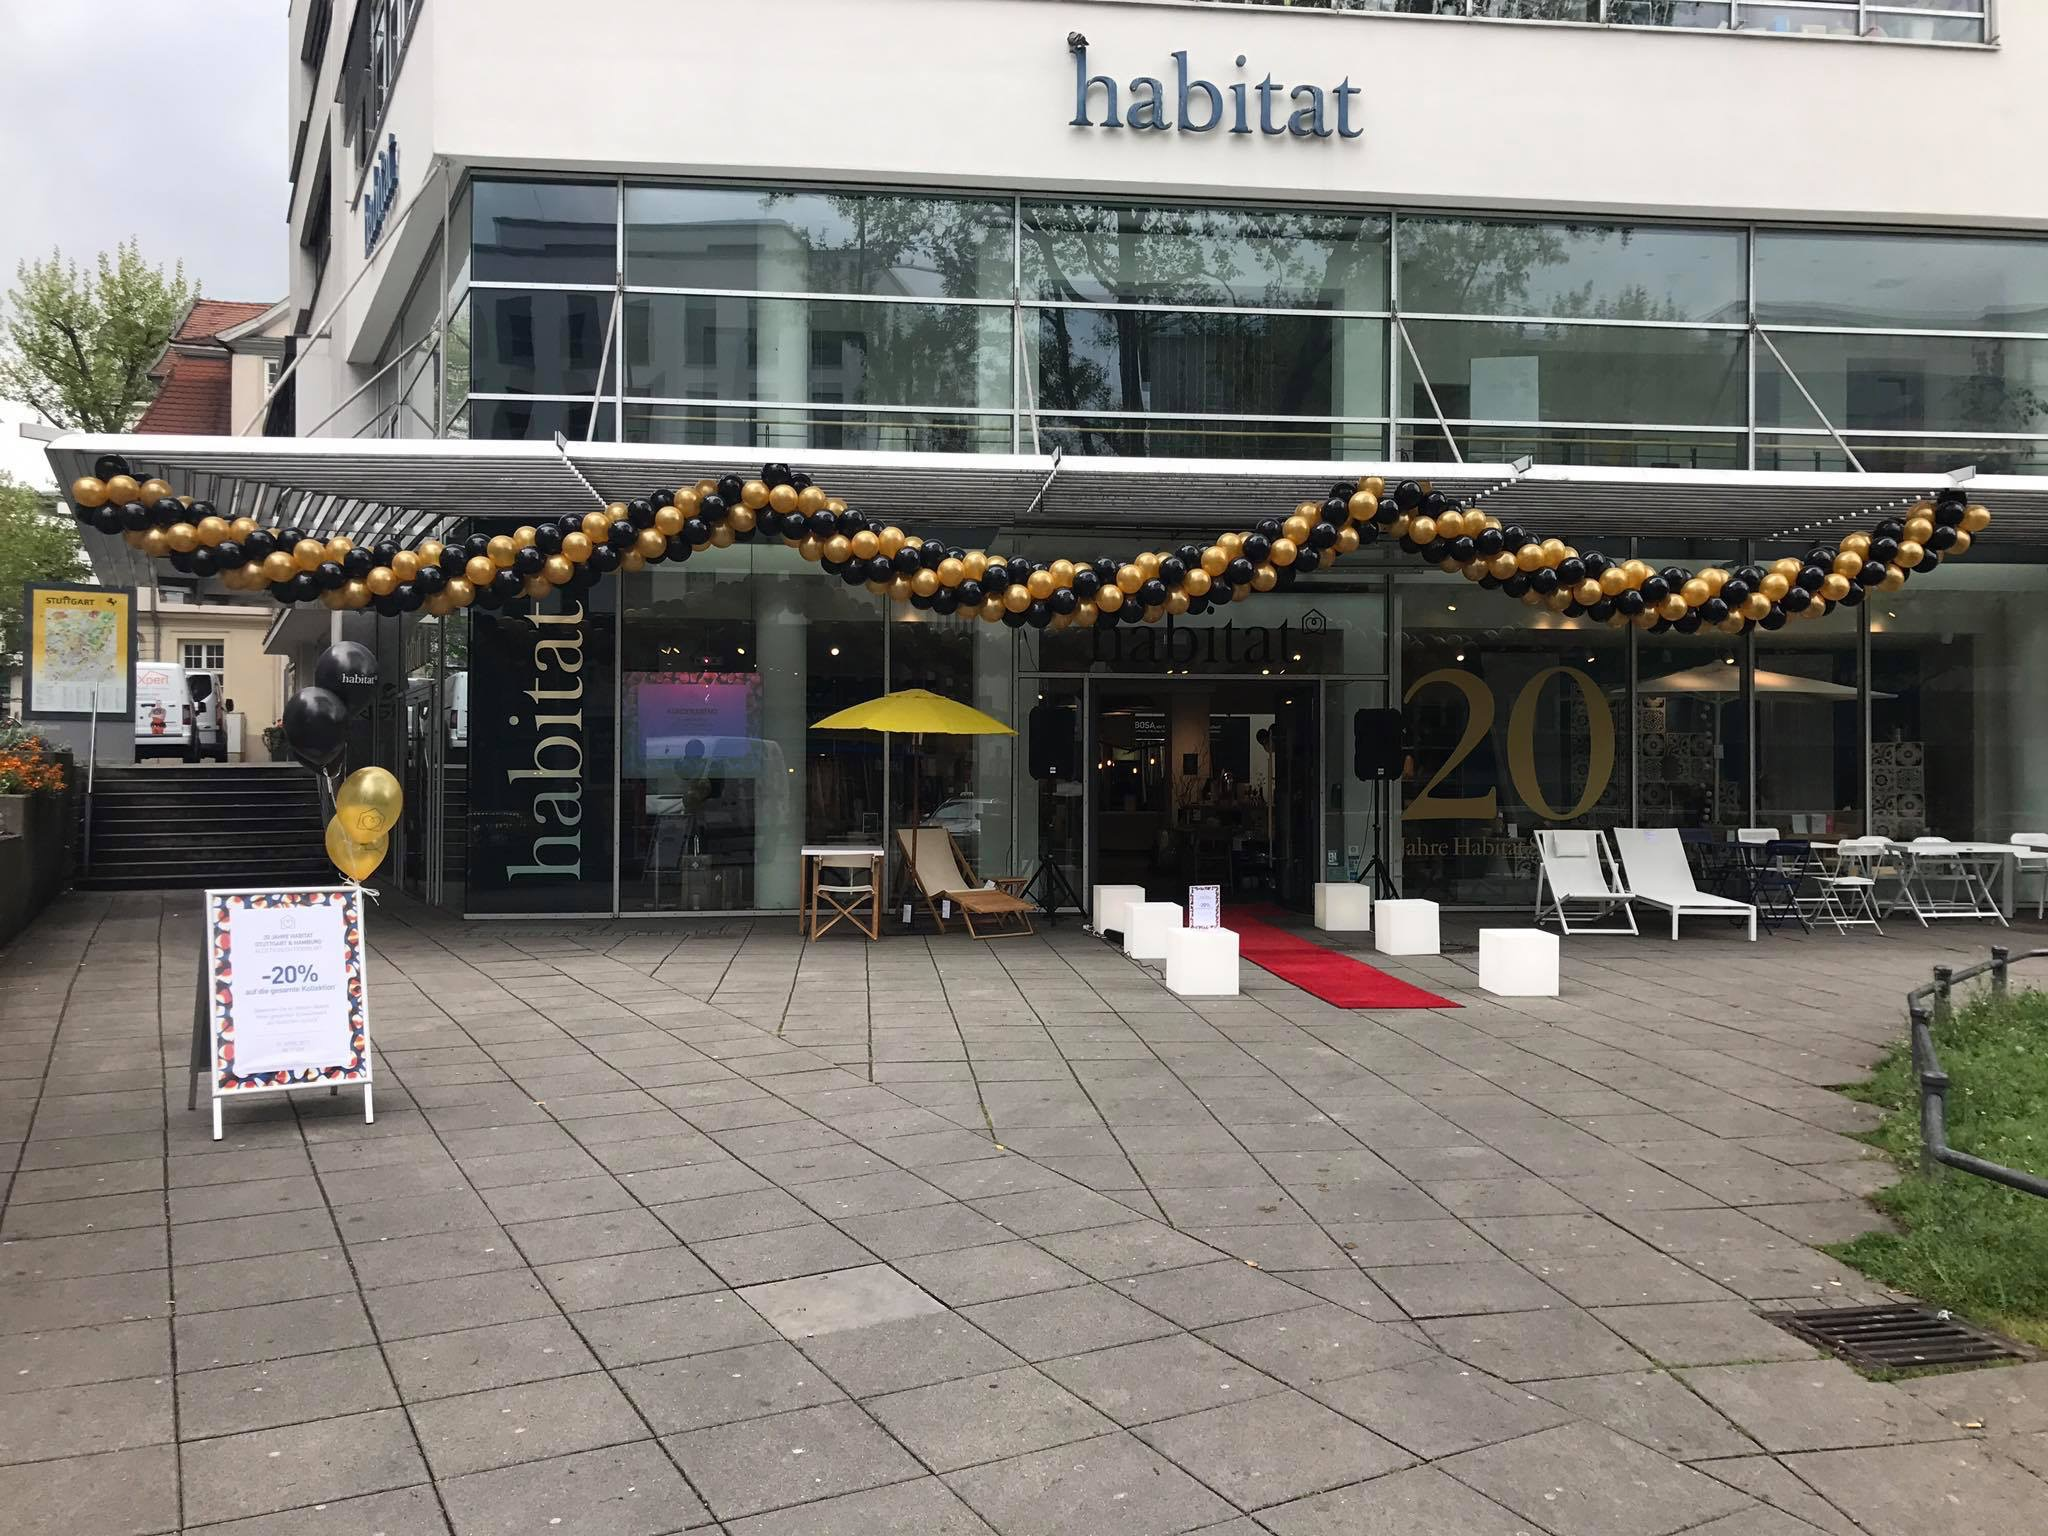 Backzubeh r tortenzubeh r ballon u eventdekoration for Habitat stuttgart